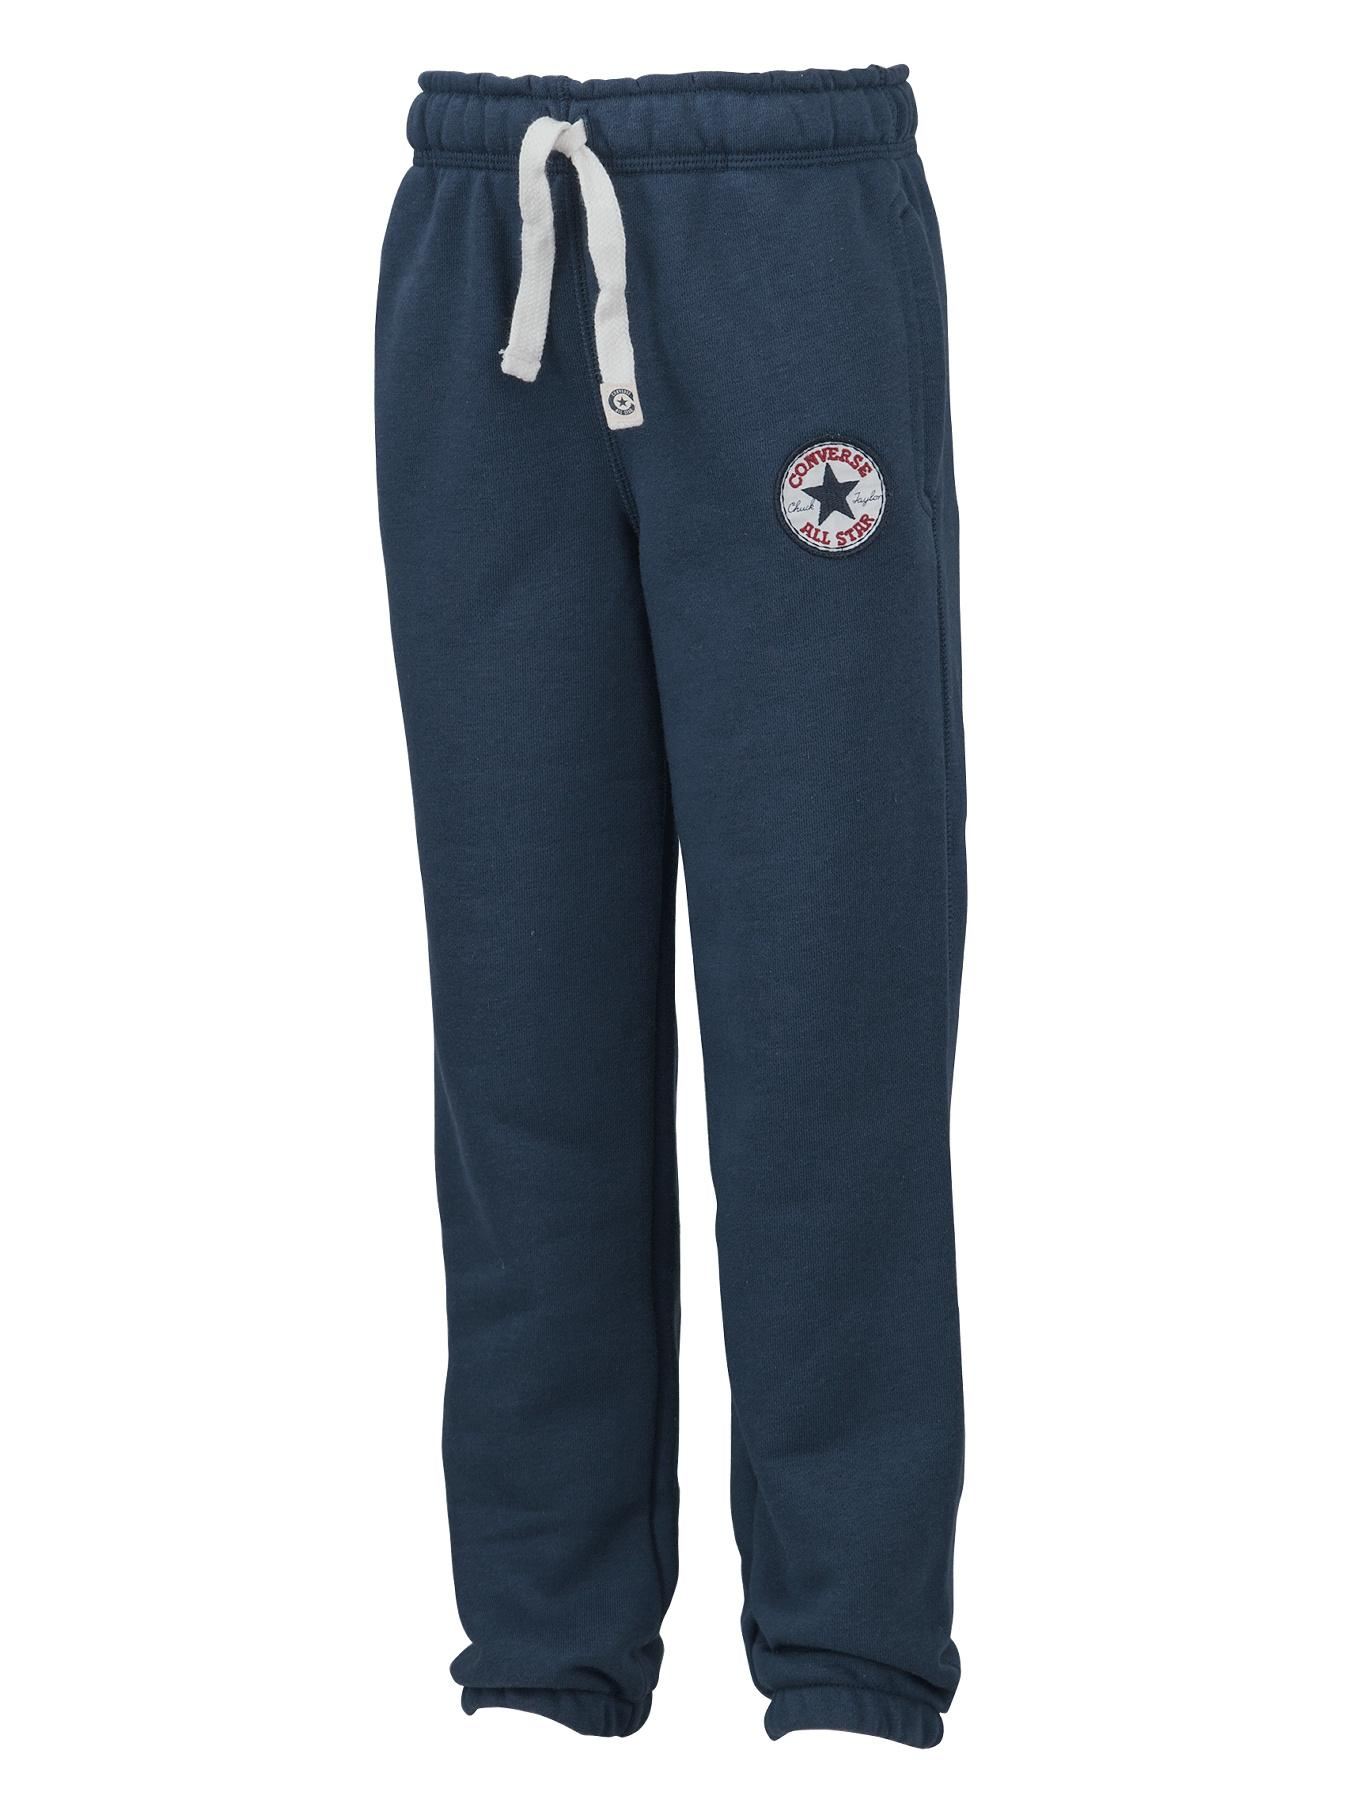 Little Boys Chuck Patch Fleece Pants - Navy, Navy